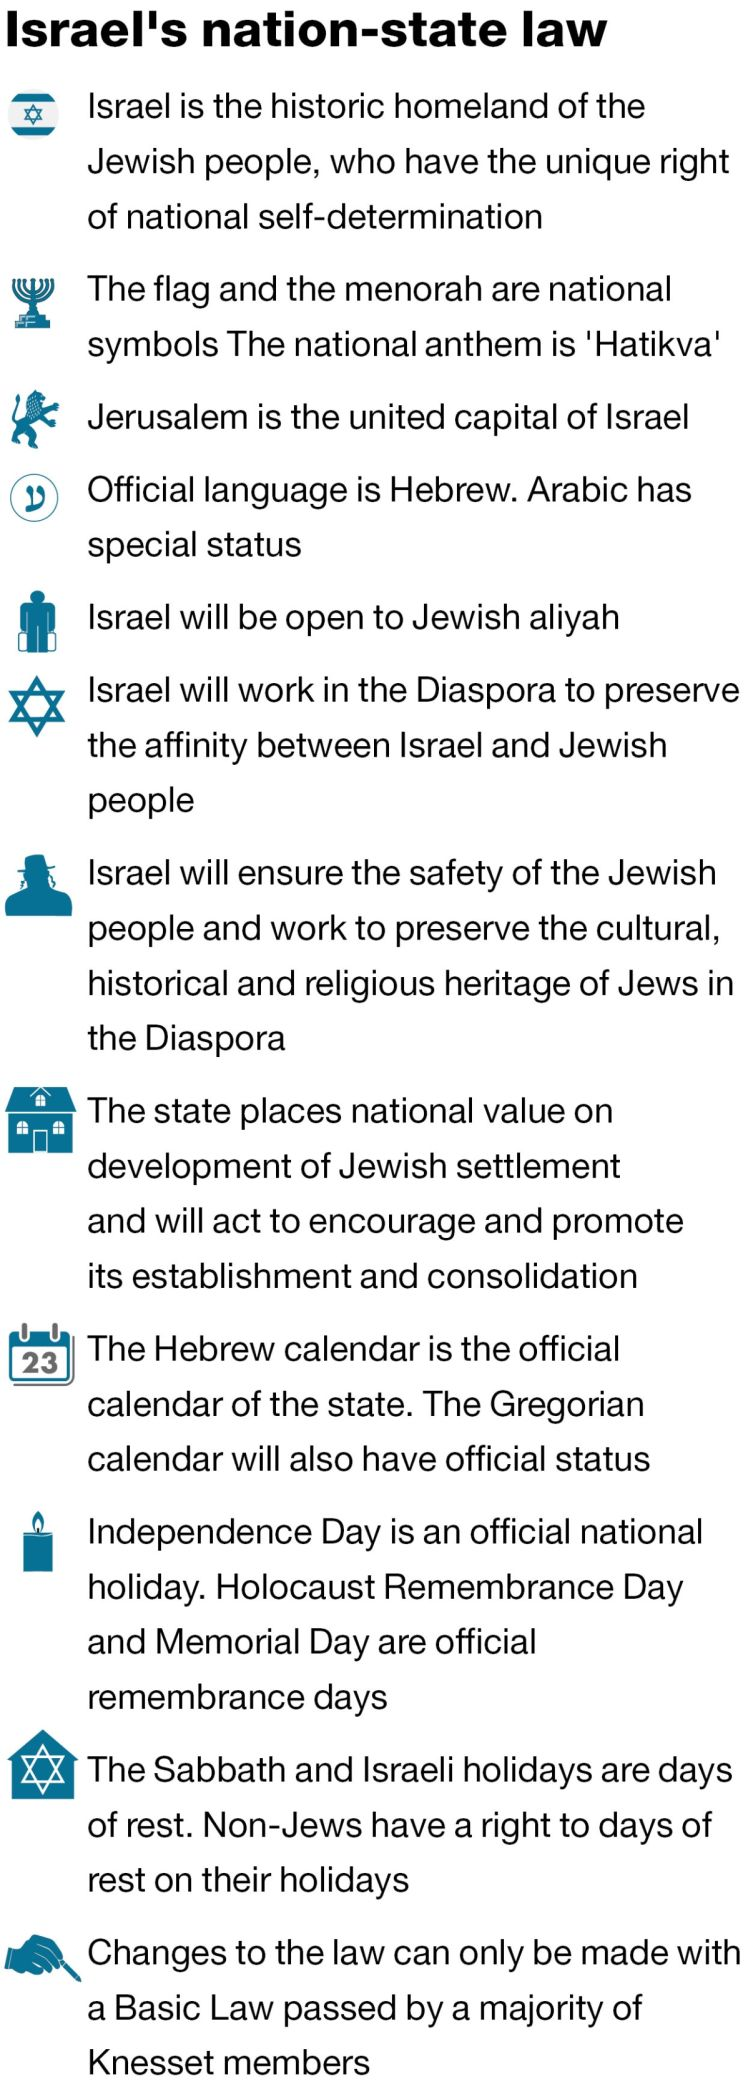 Israel's nation-state law